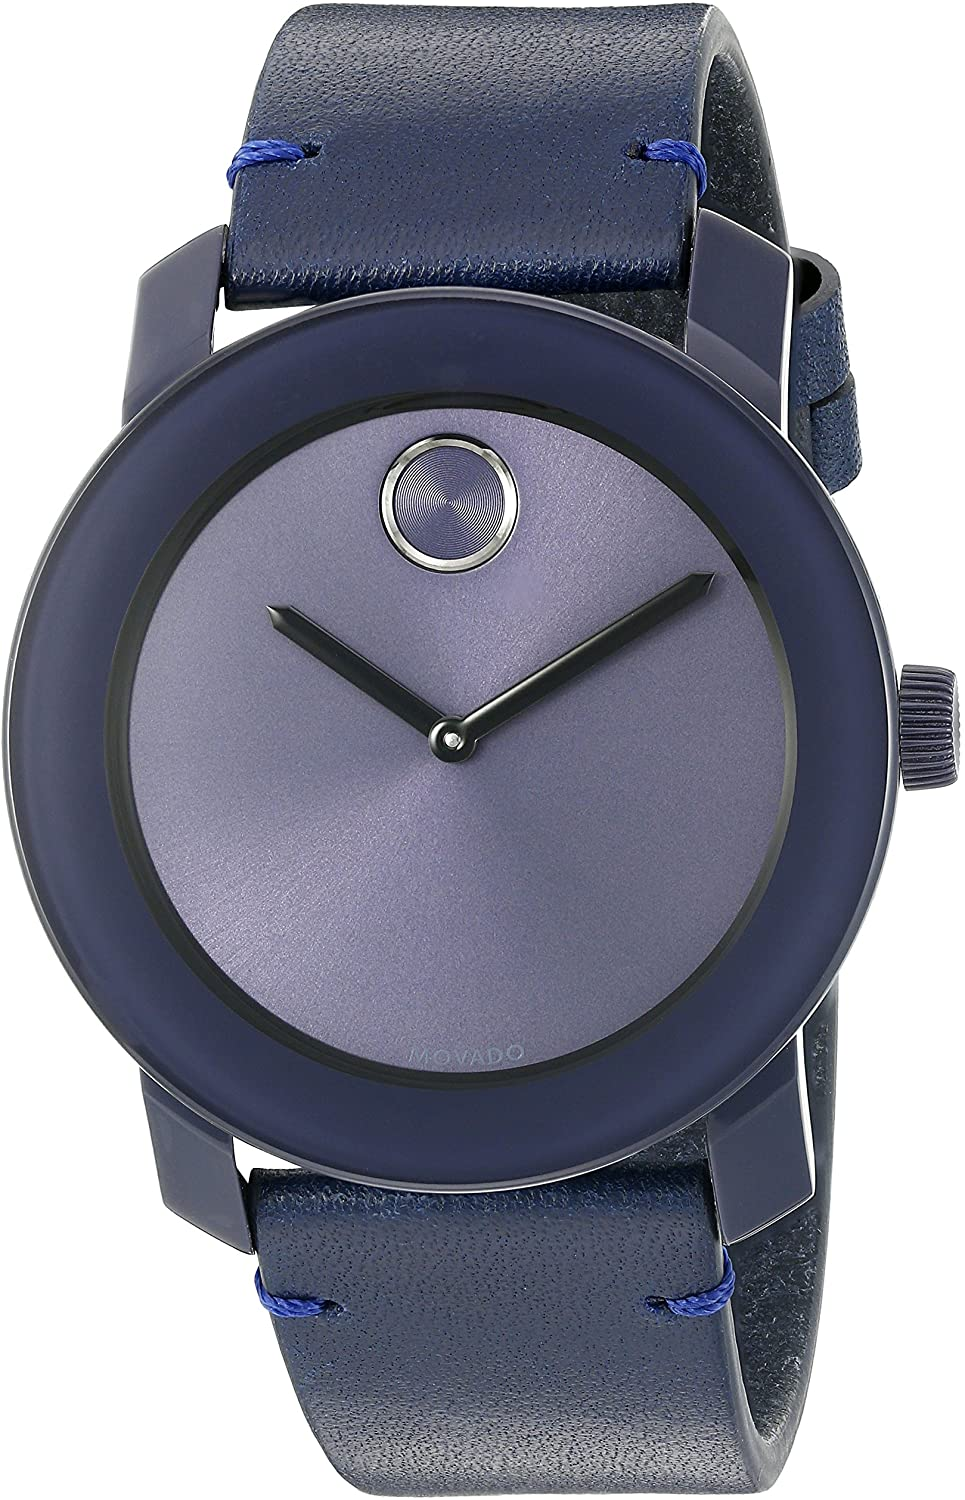 Movado Men s Swiss Quartz Stainless Steel and Leather Watch, Color Blue Model 3600370